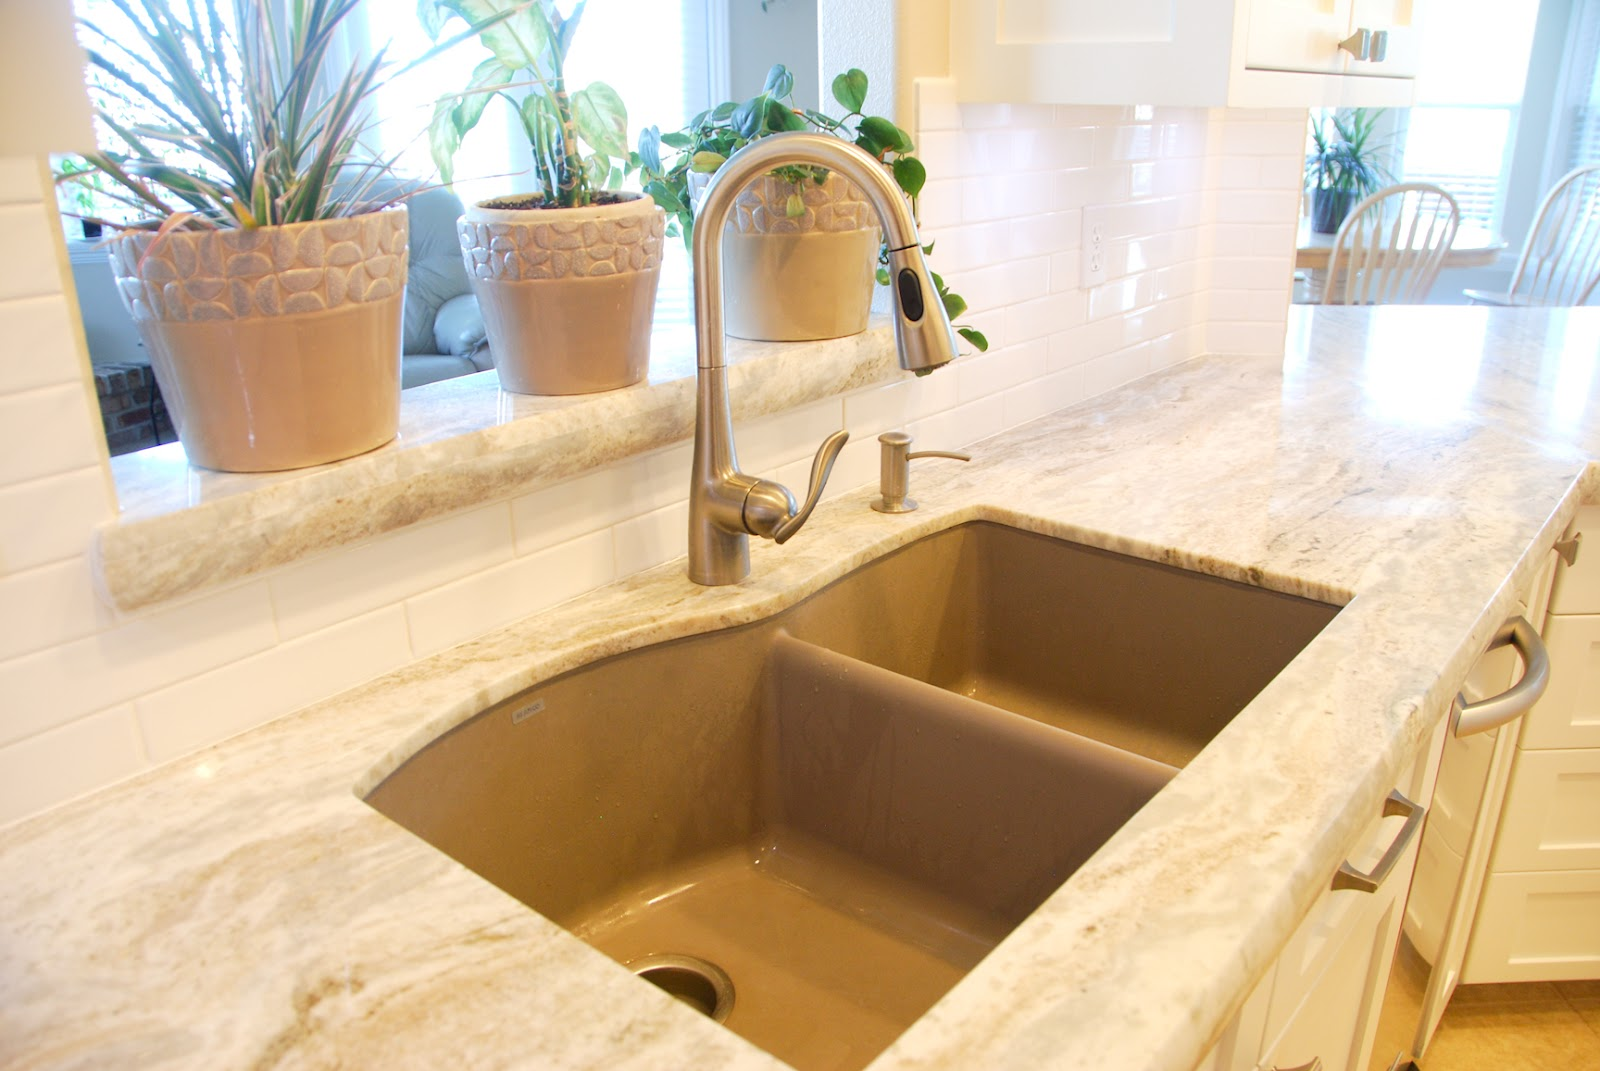 Countertops are fantasy brown granite the backsplash is marble - Photo Mgs By Design